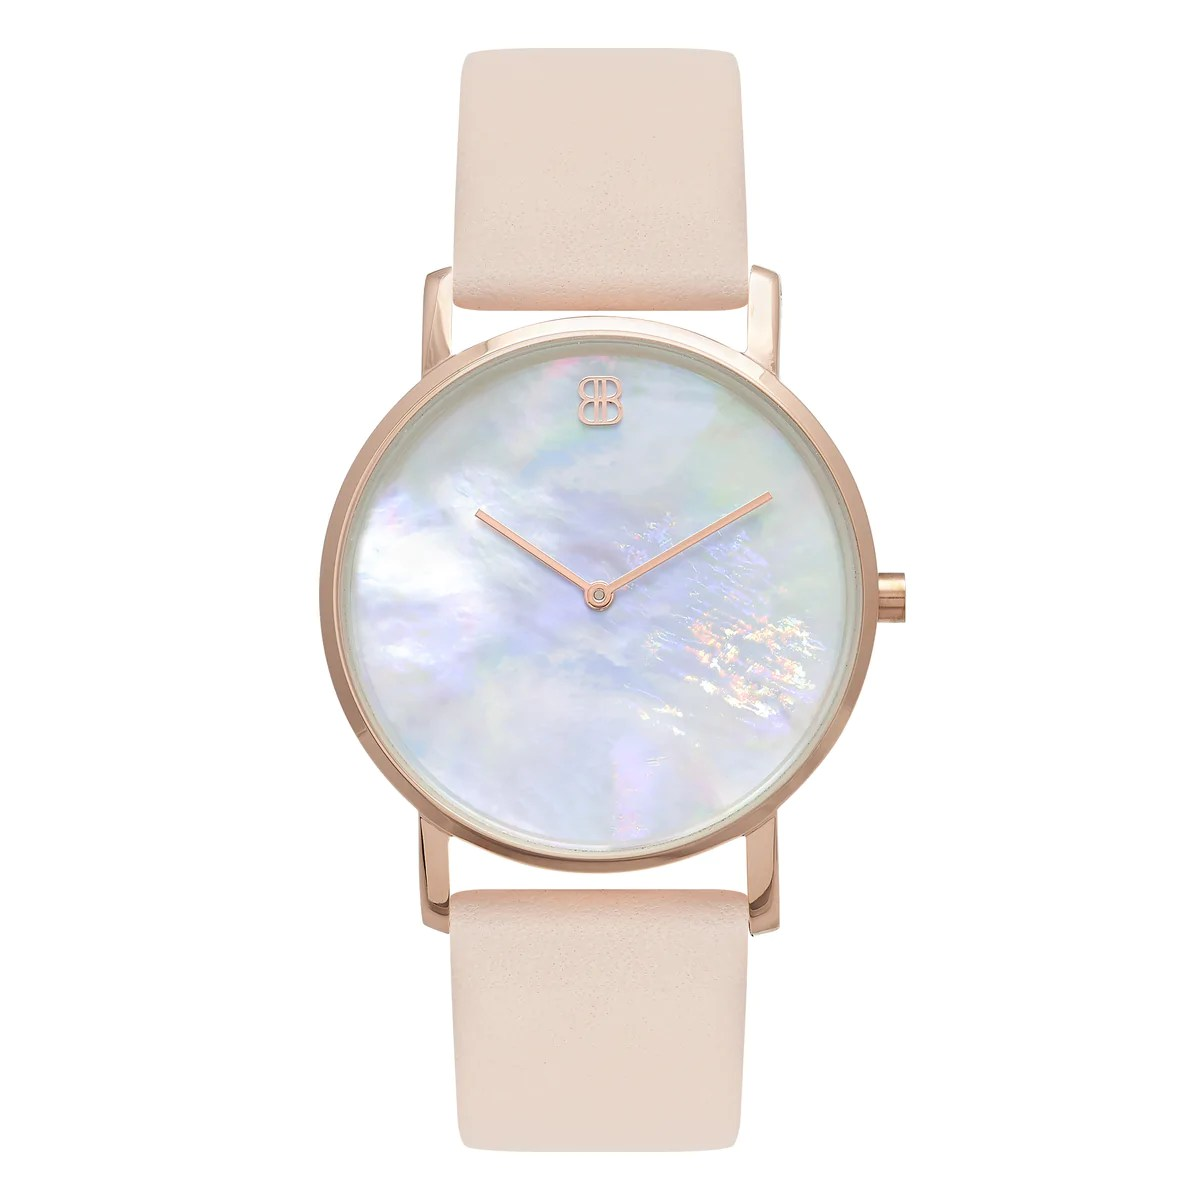 Leather Strap Rose Gold Watch Slim Minimalist Rose Gold Watch Pearl Dial Men S Women S Pink Leather Strap Mark 1 Mayfair 38mm